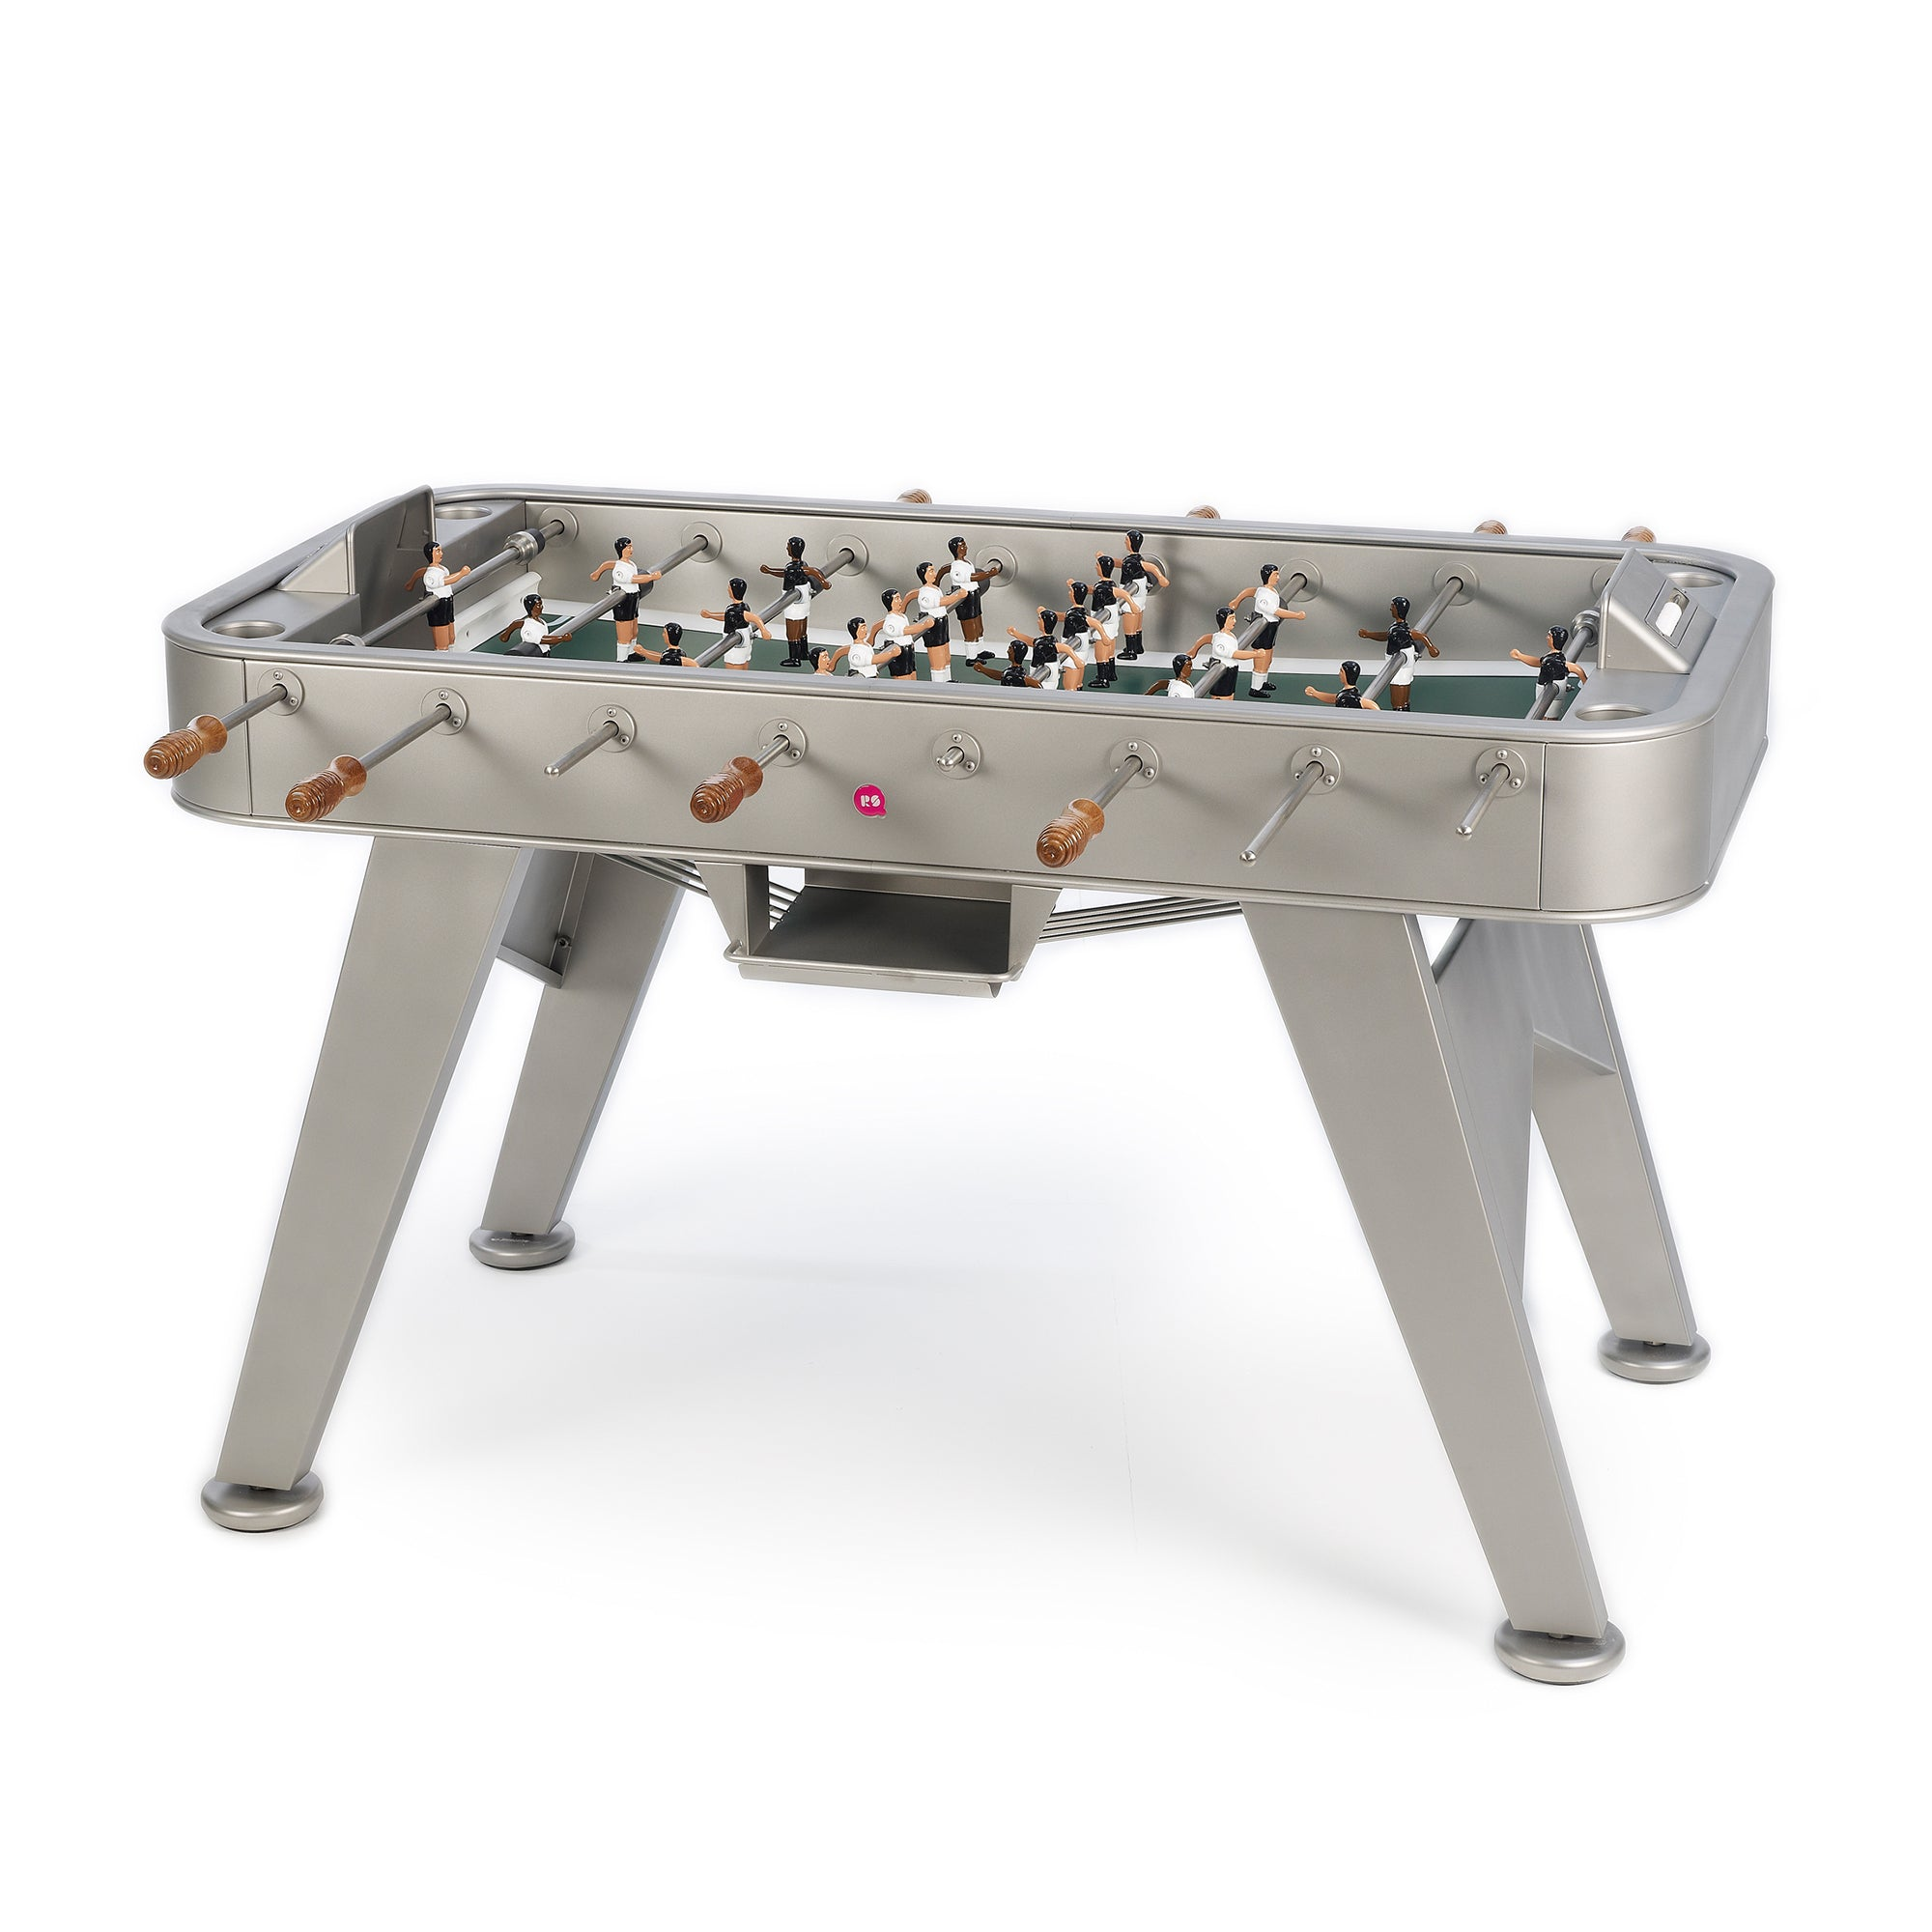 RS2 Foosball Table Outdoor: Inox